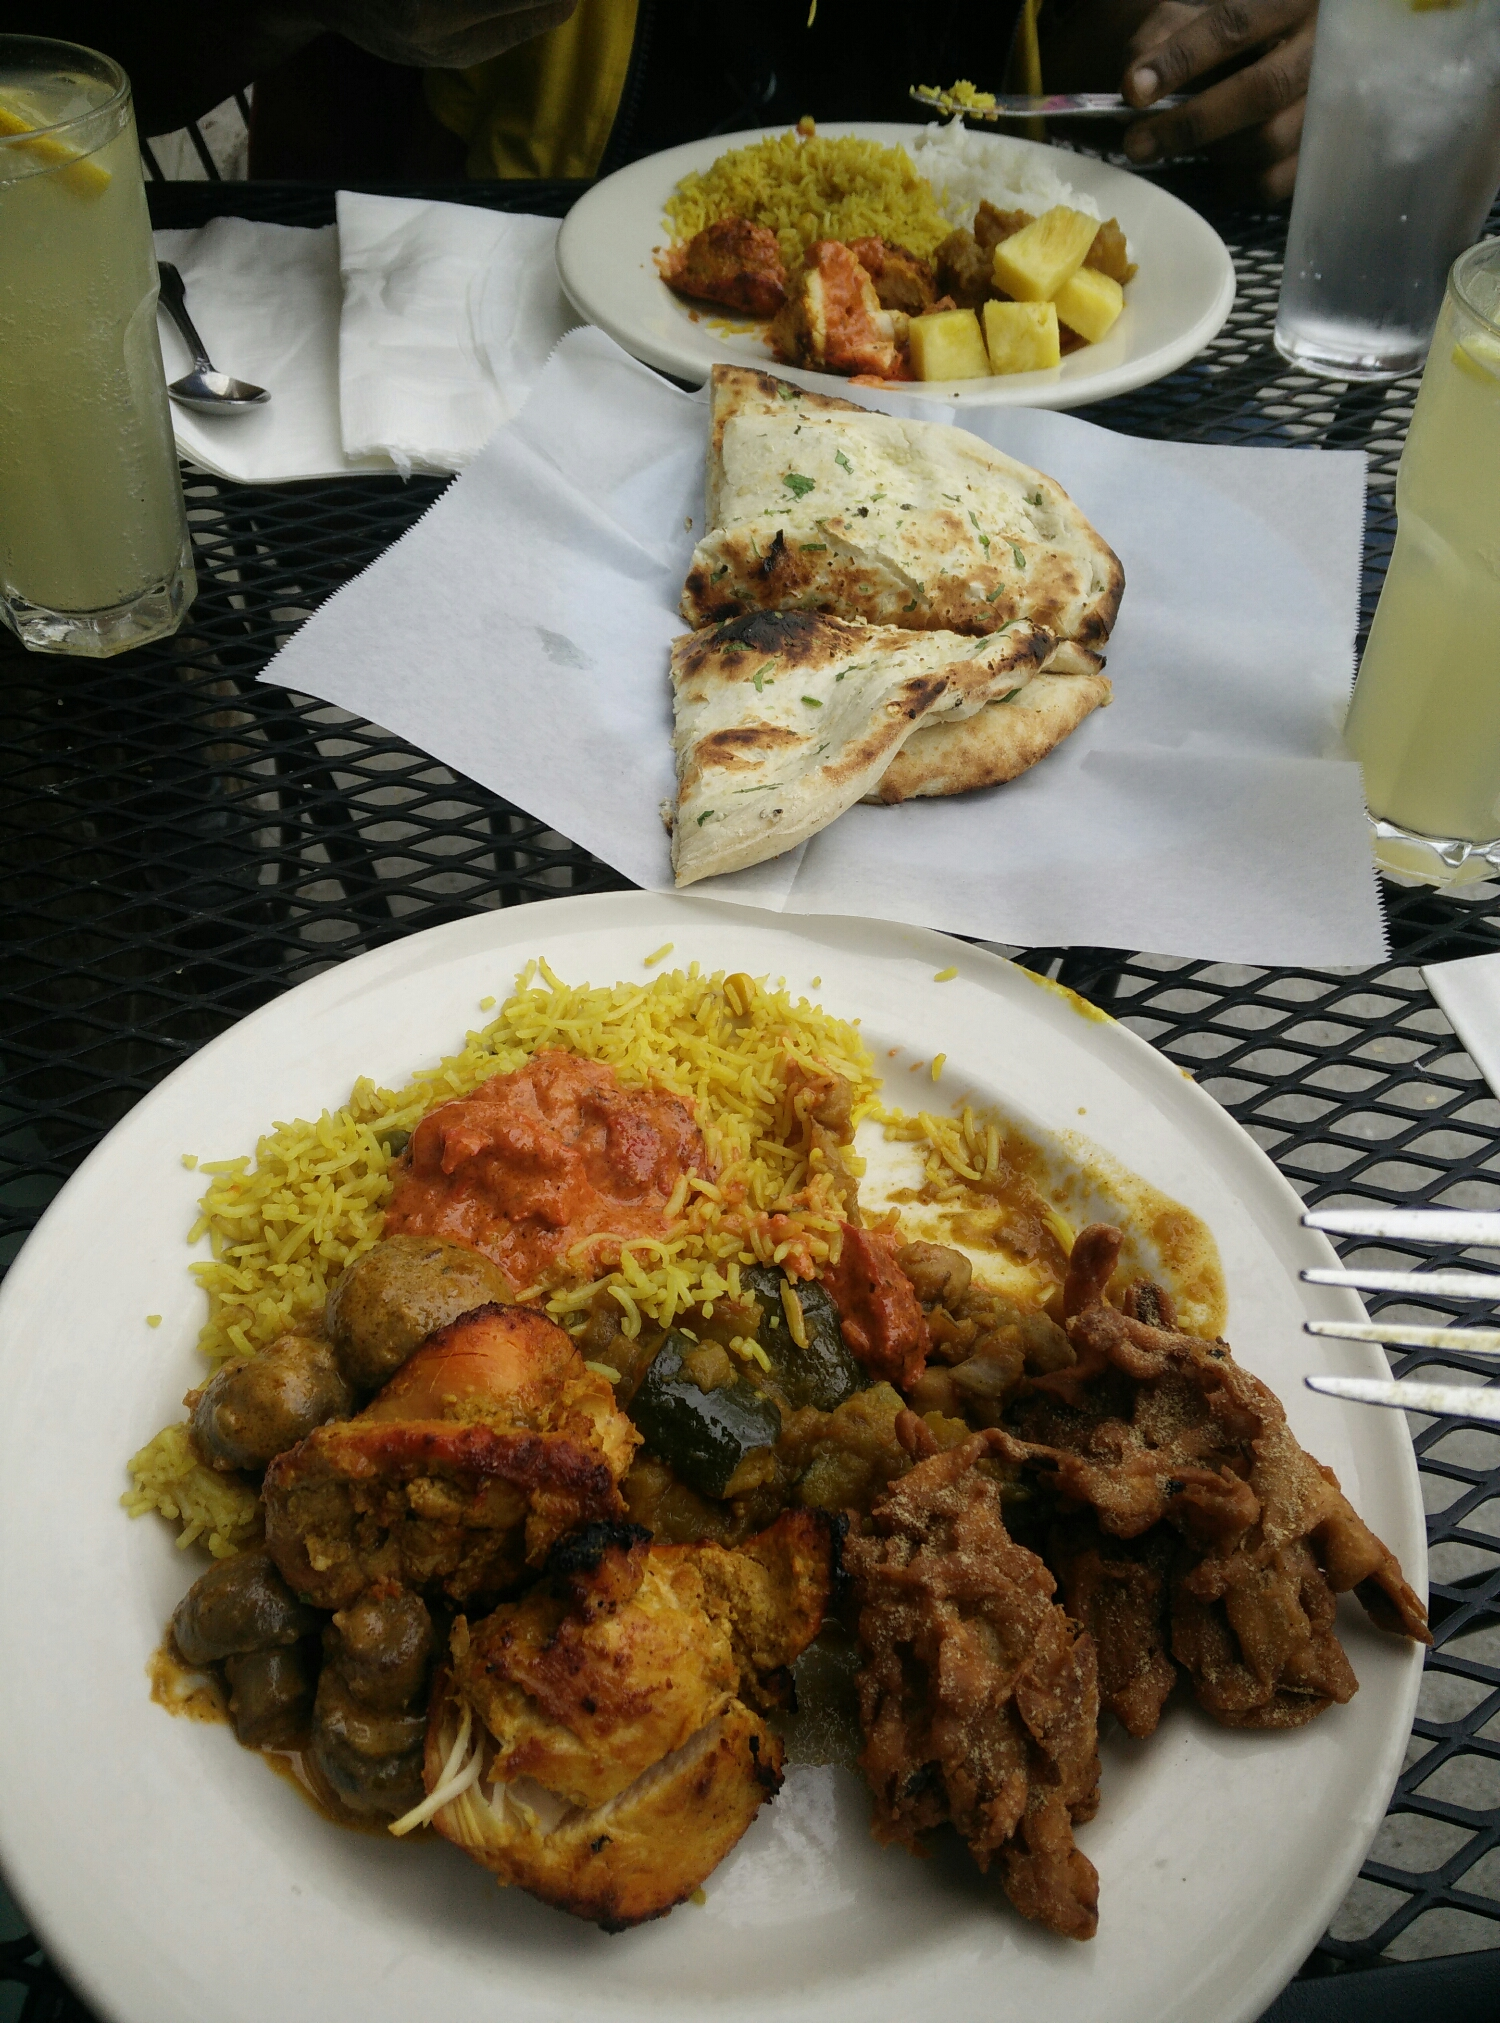 Lunch at the Indian restaurant: Taj Cafe